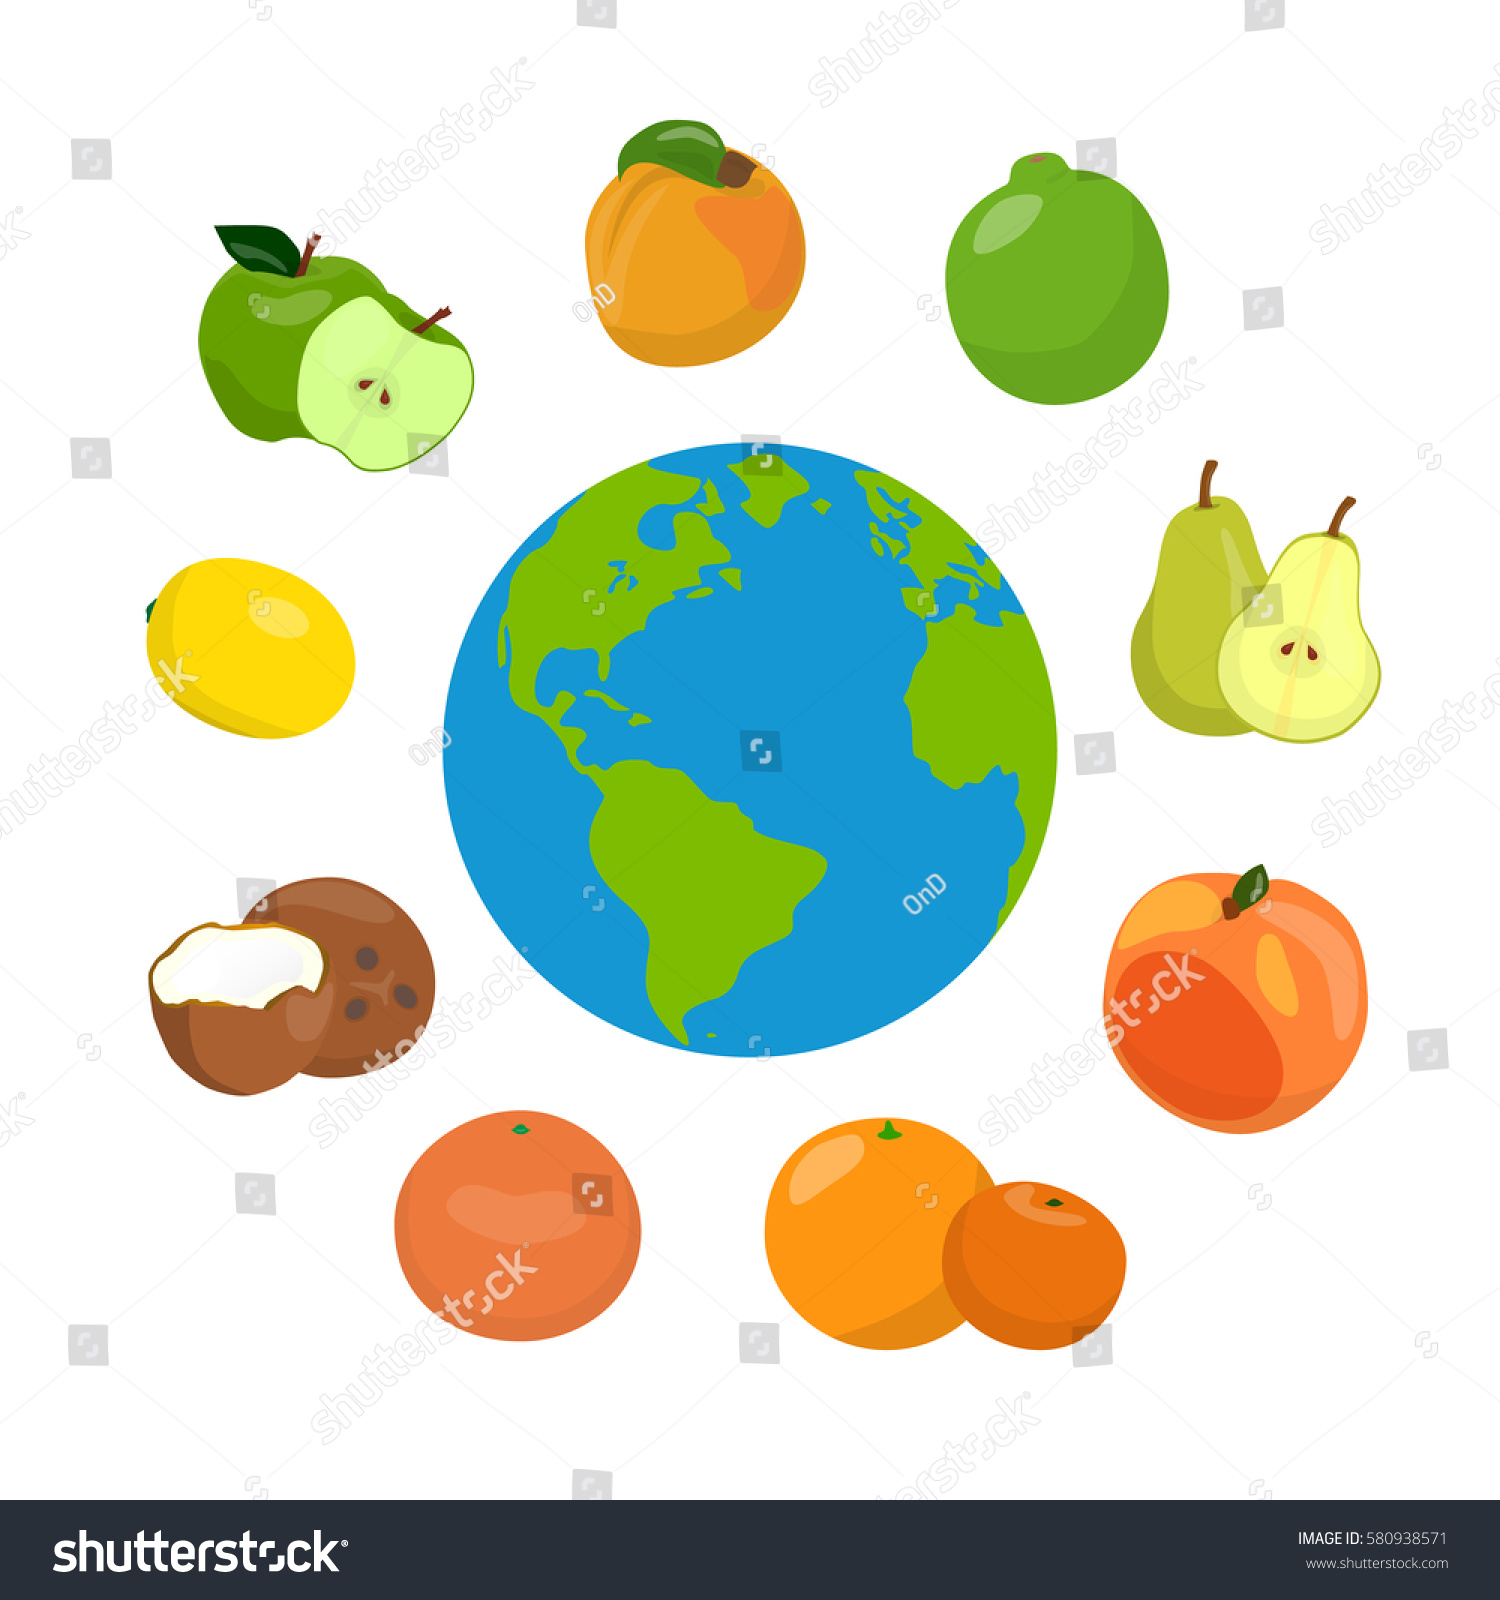 Similar Images To Various Fruits Around The World Health Day Concept With Earth And Healthy Food Vector Illustration